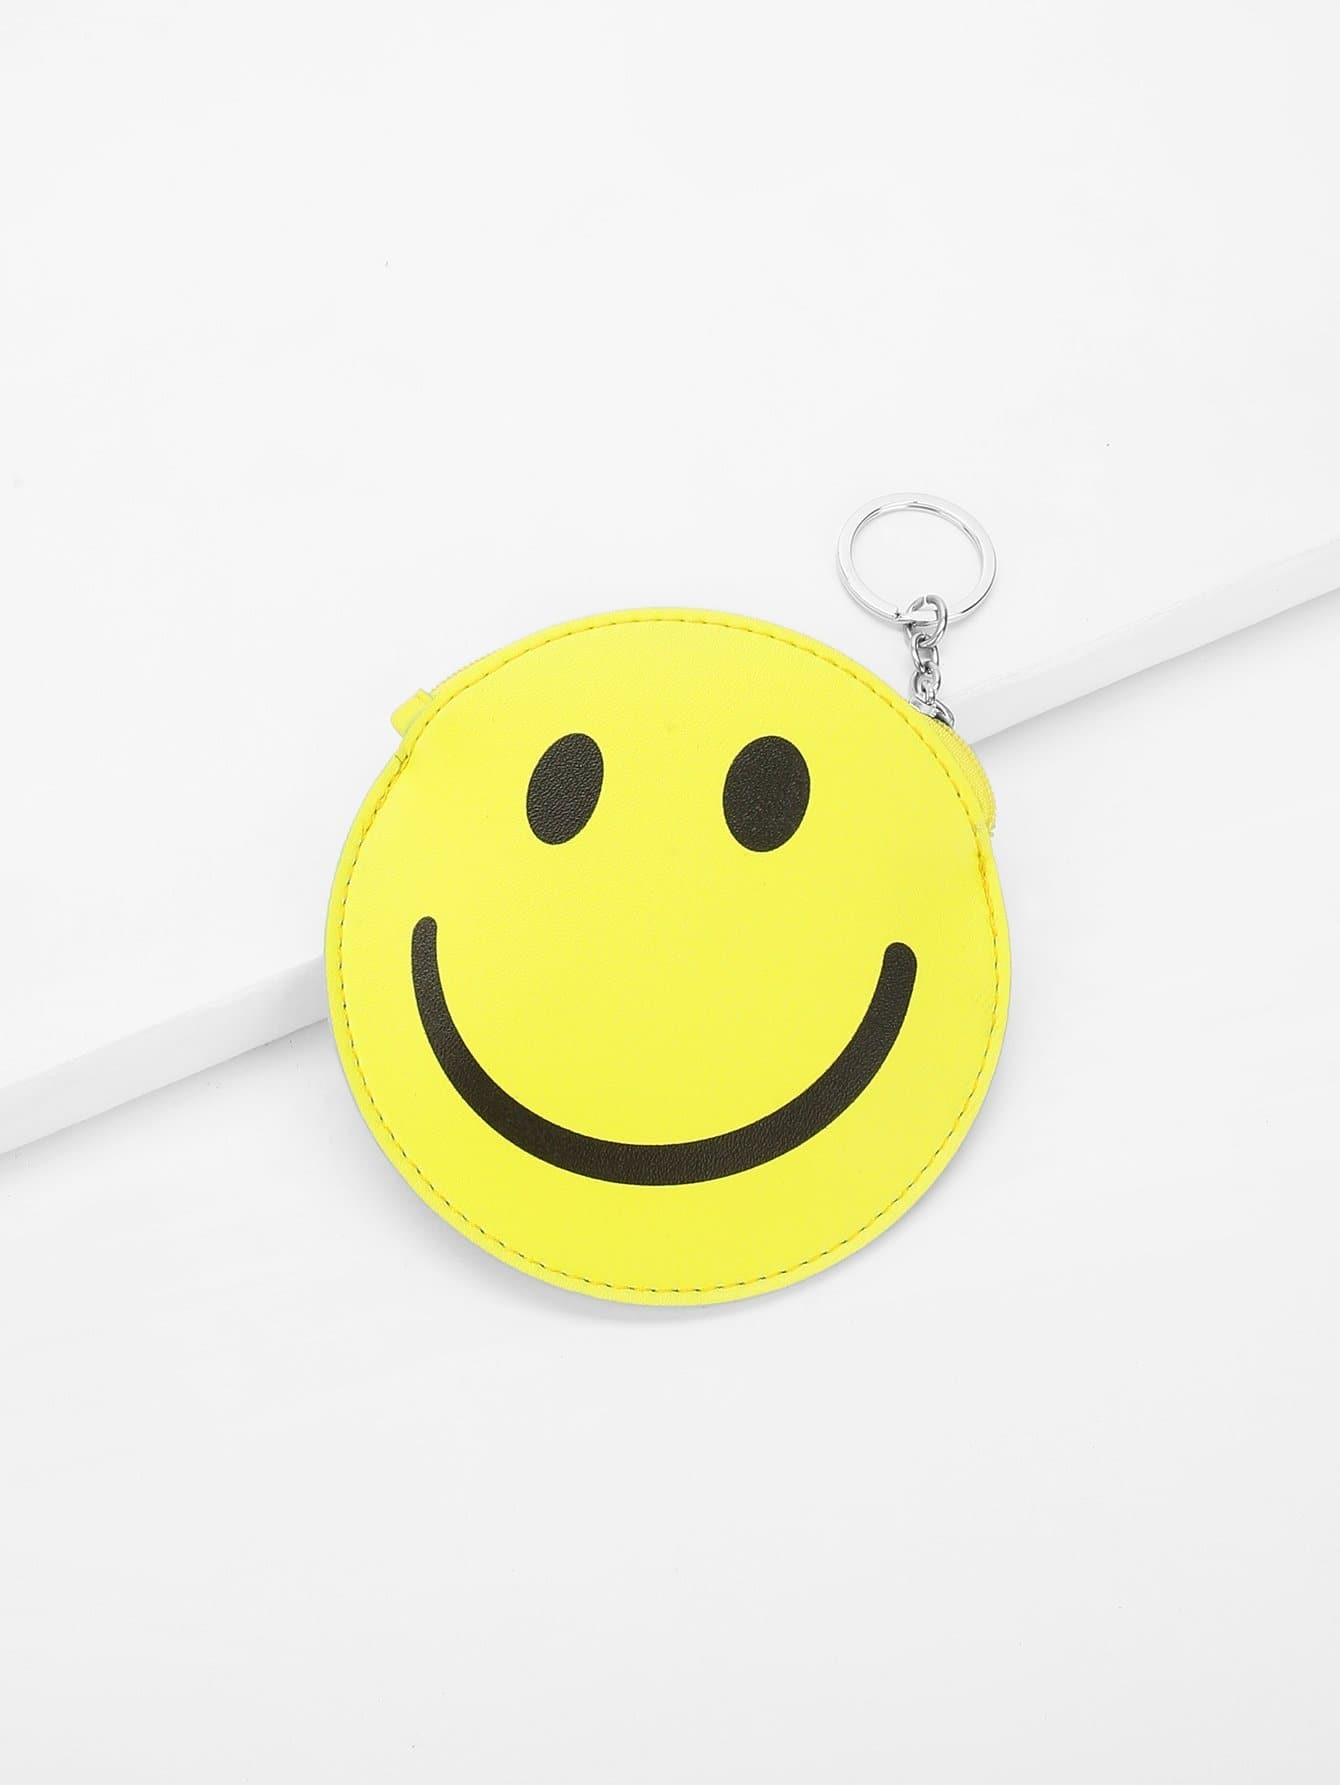 Round Smiley Face Coin Purse 2017 cute girls coin purses small coin bag key ring kawaii bag kids mini wallet card holders leather cartoon coin purse	1bw73